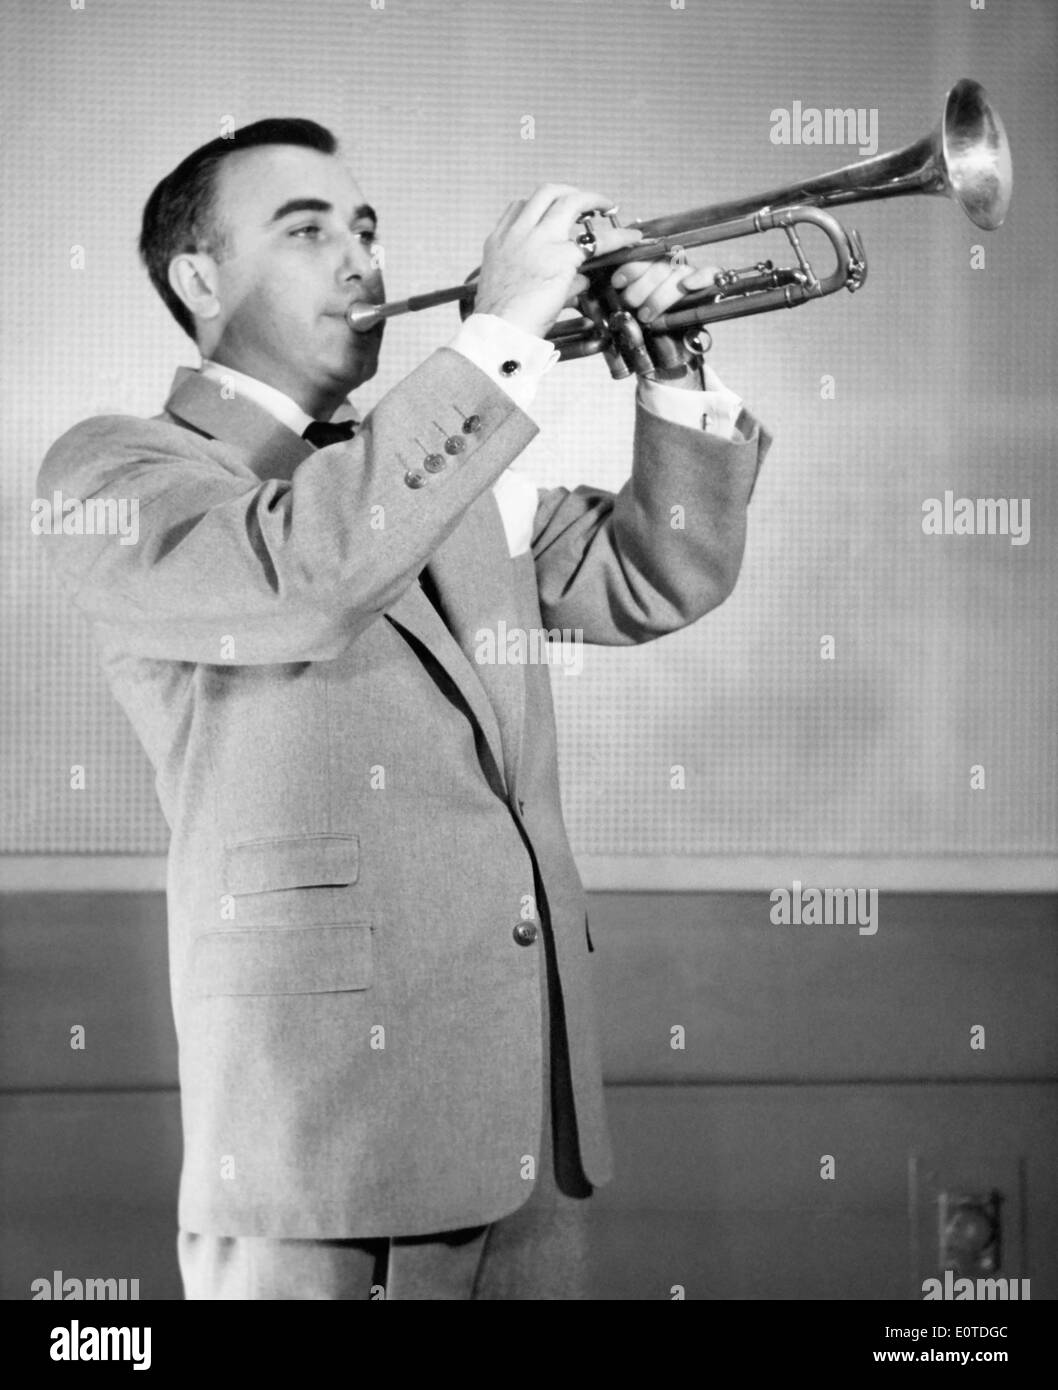 Ralph Marterie Big Band Leader Portrait Playing Trumpet Circa Stock Photo Alamy